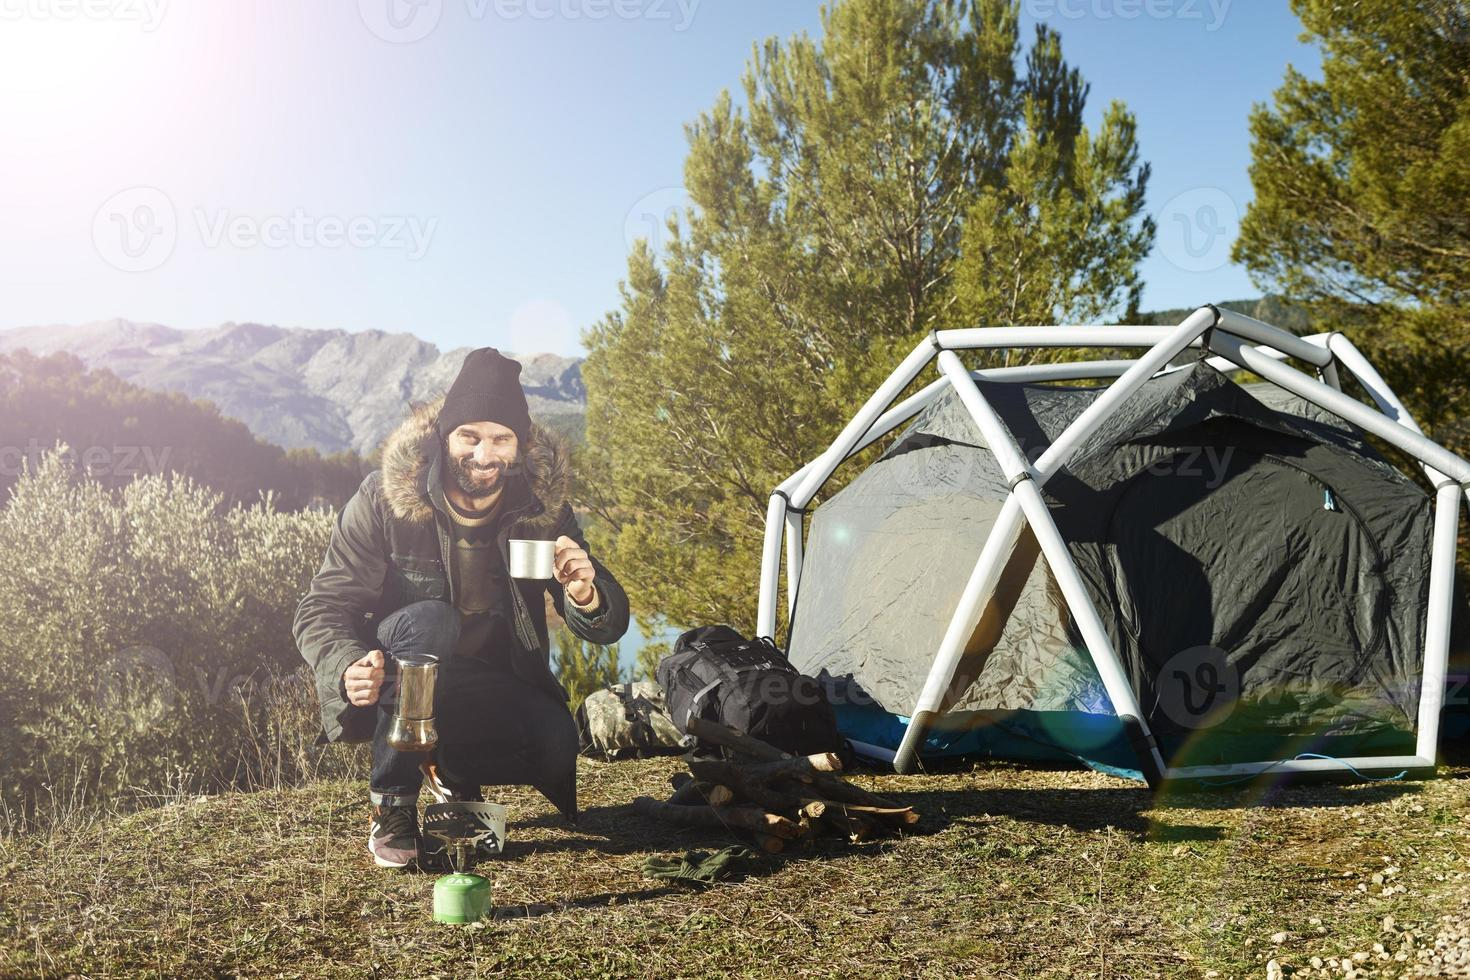 Man camping drinking coffee near tent smiling happy outdoors in photo